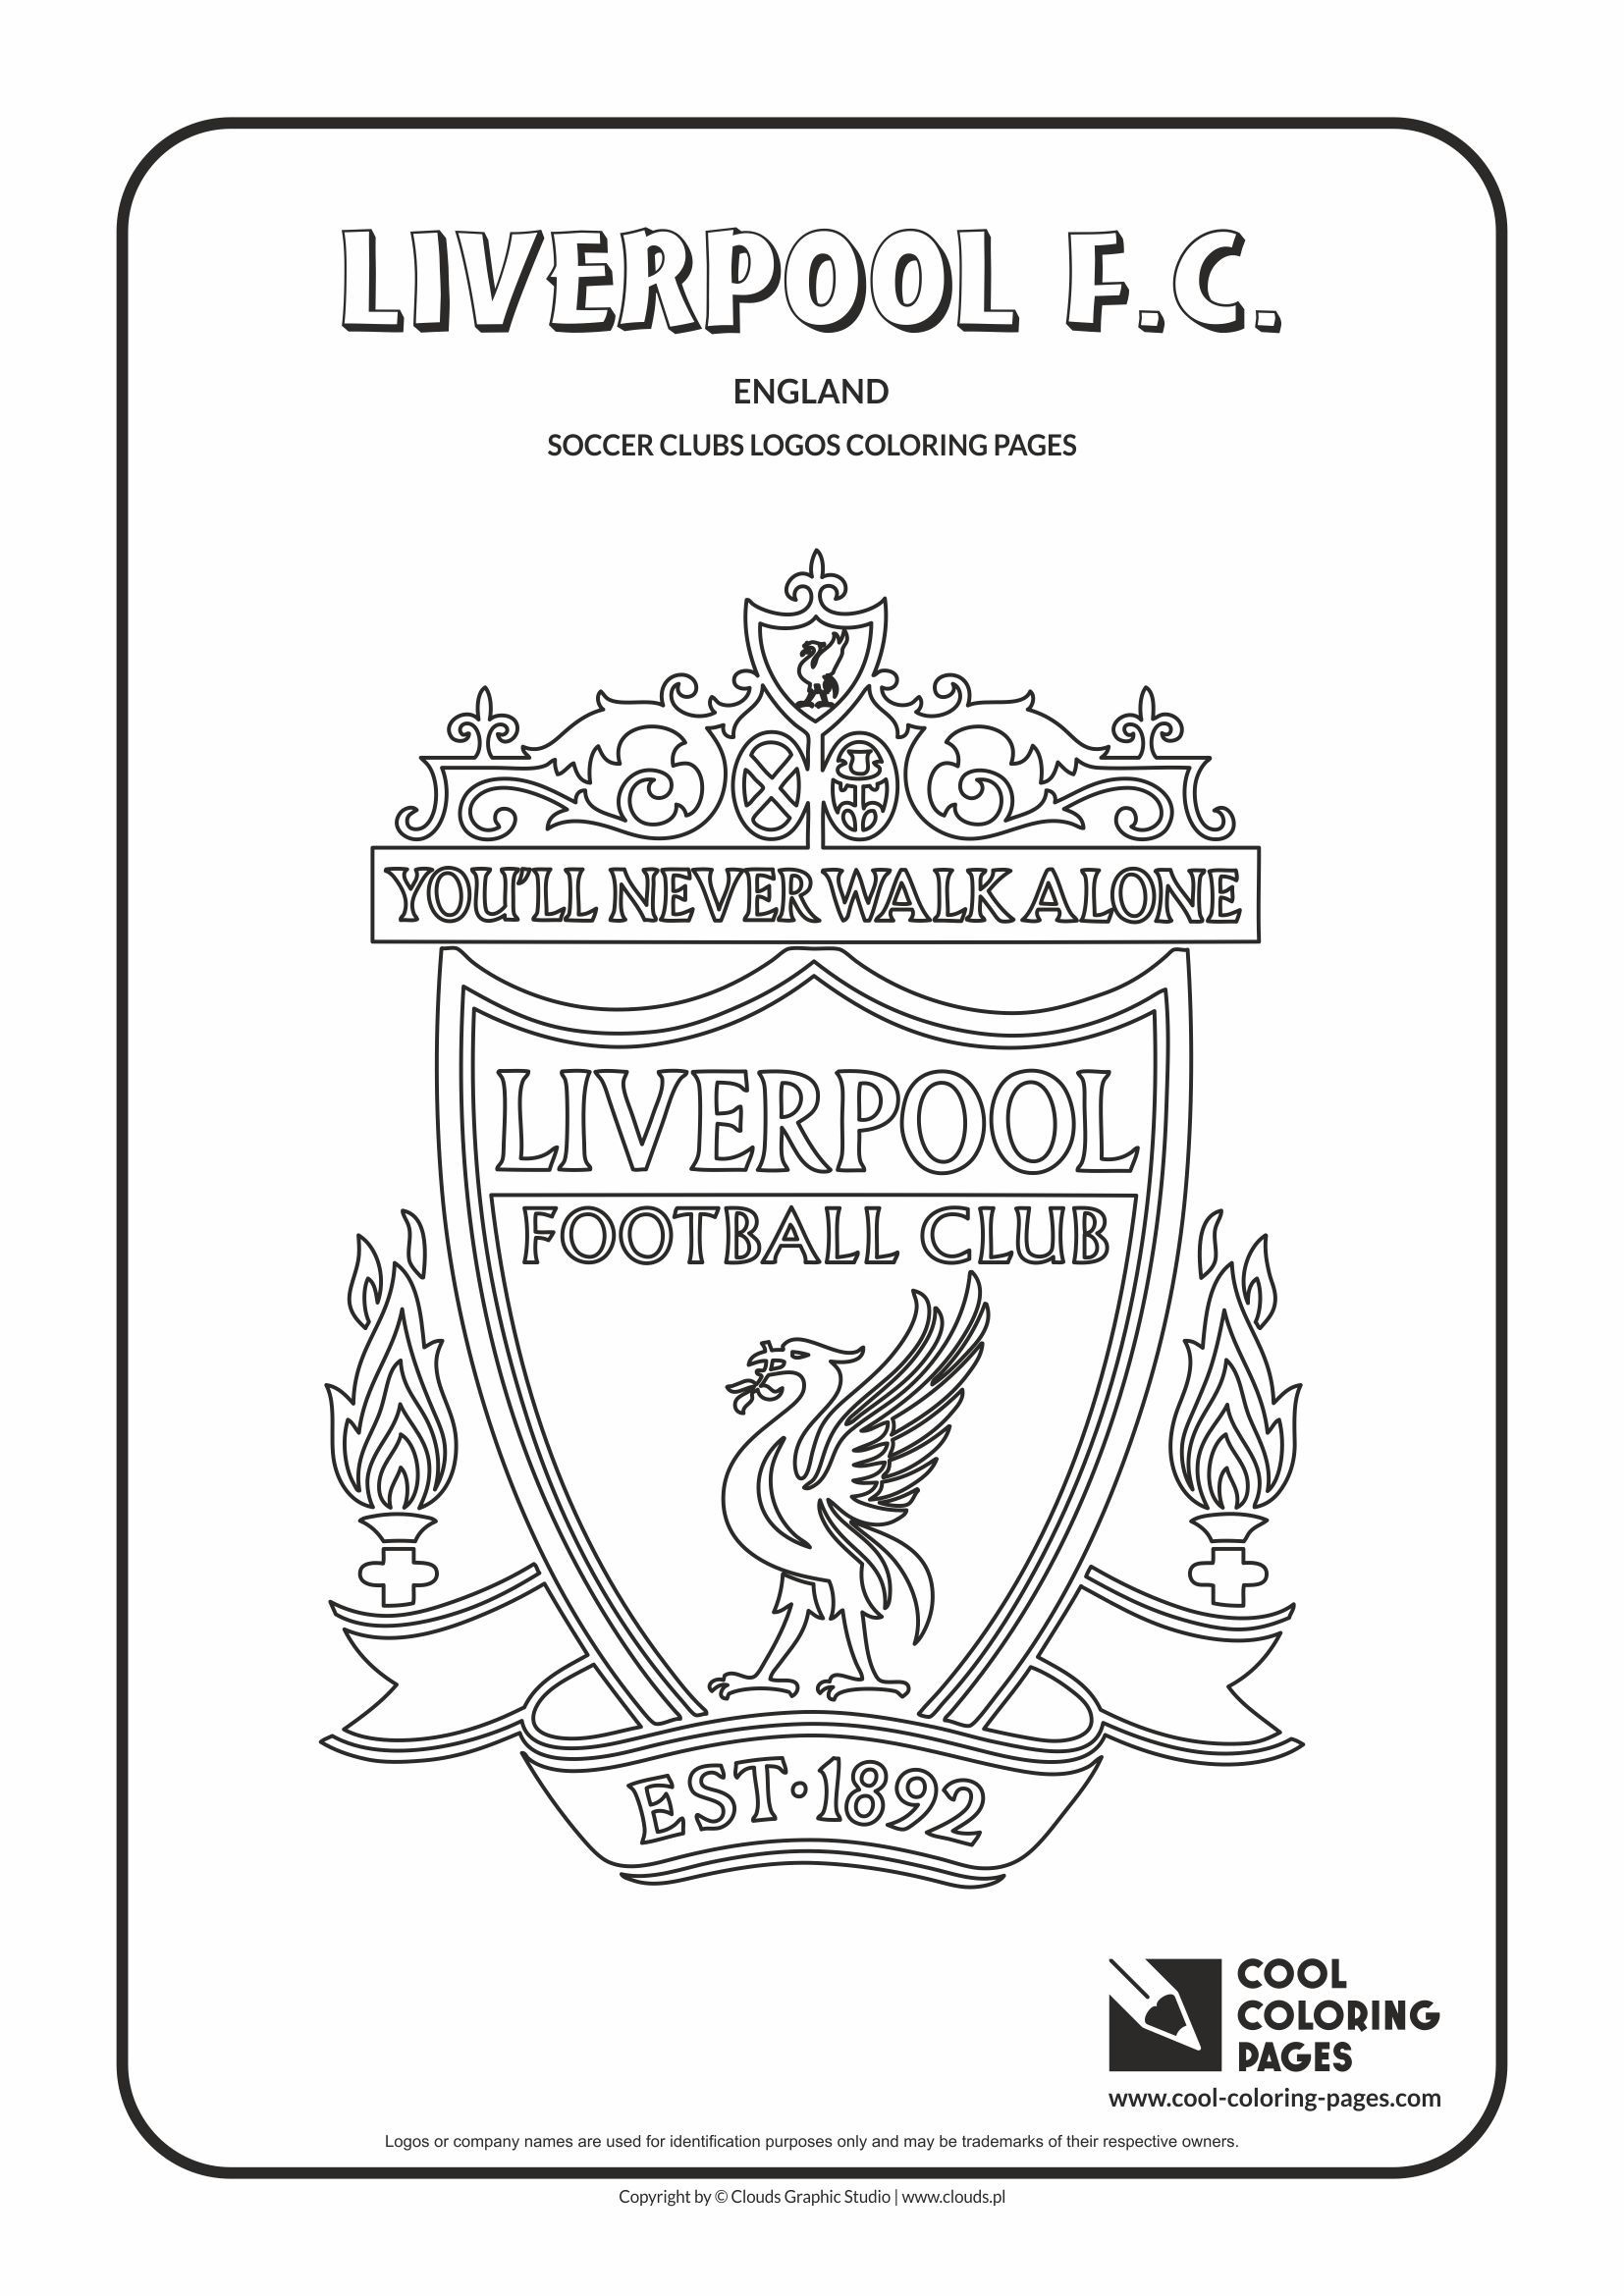 Liverpool FC logo coloring  Coloring page with Liverpool FC